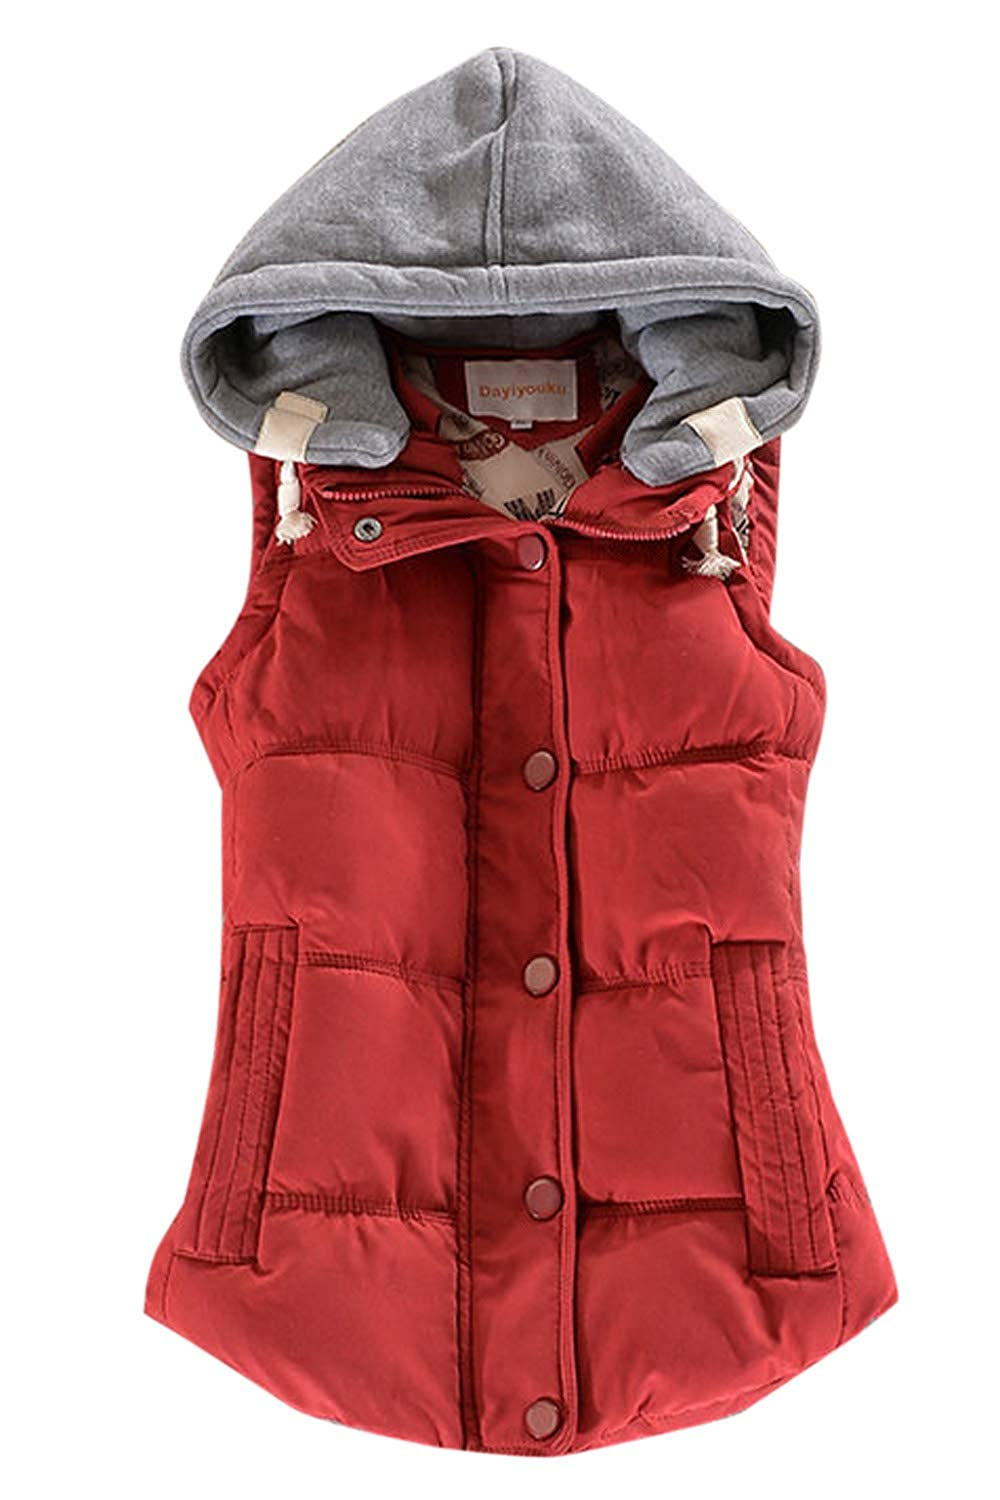 Sopliagon Womens Quilted Packable Down Vest Removable Hooded Waistcoat Plus Size